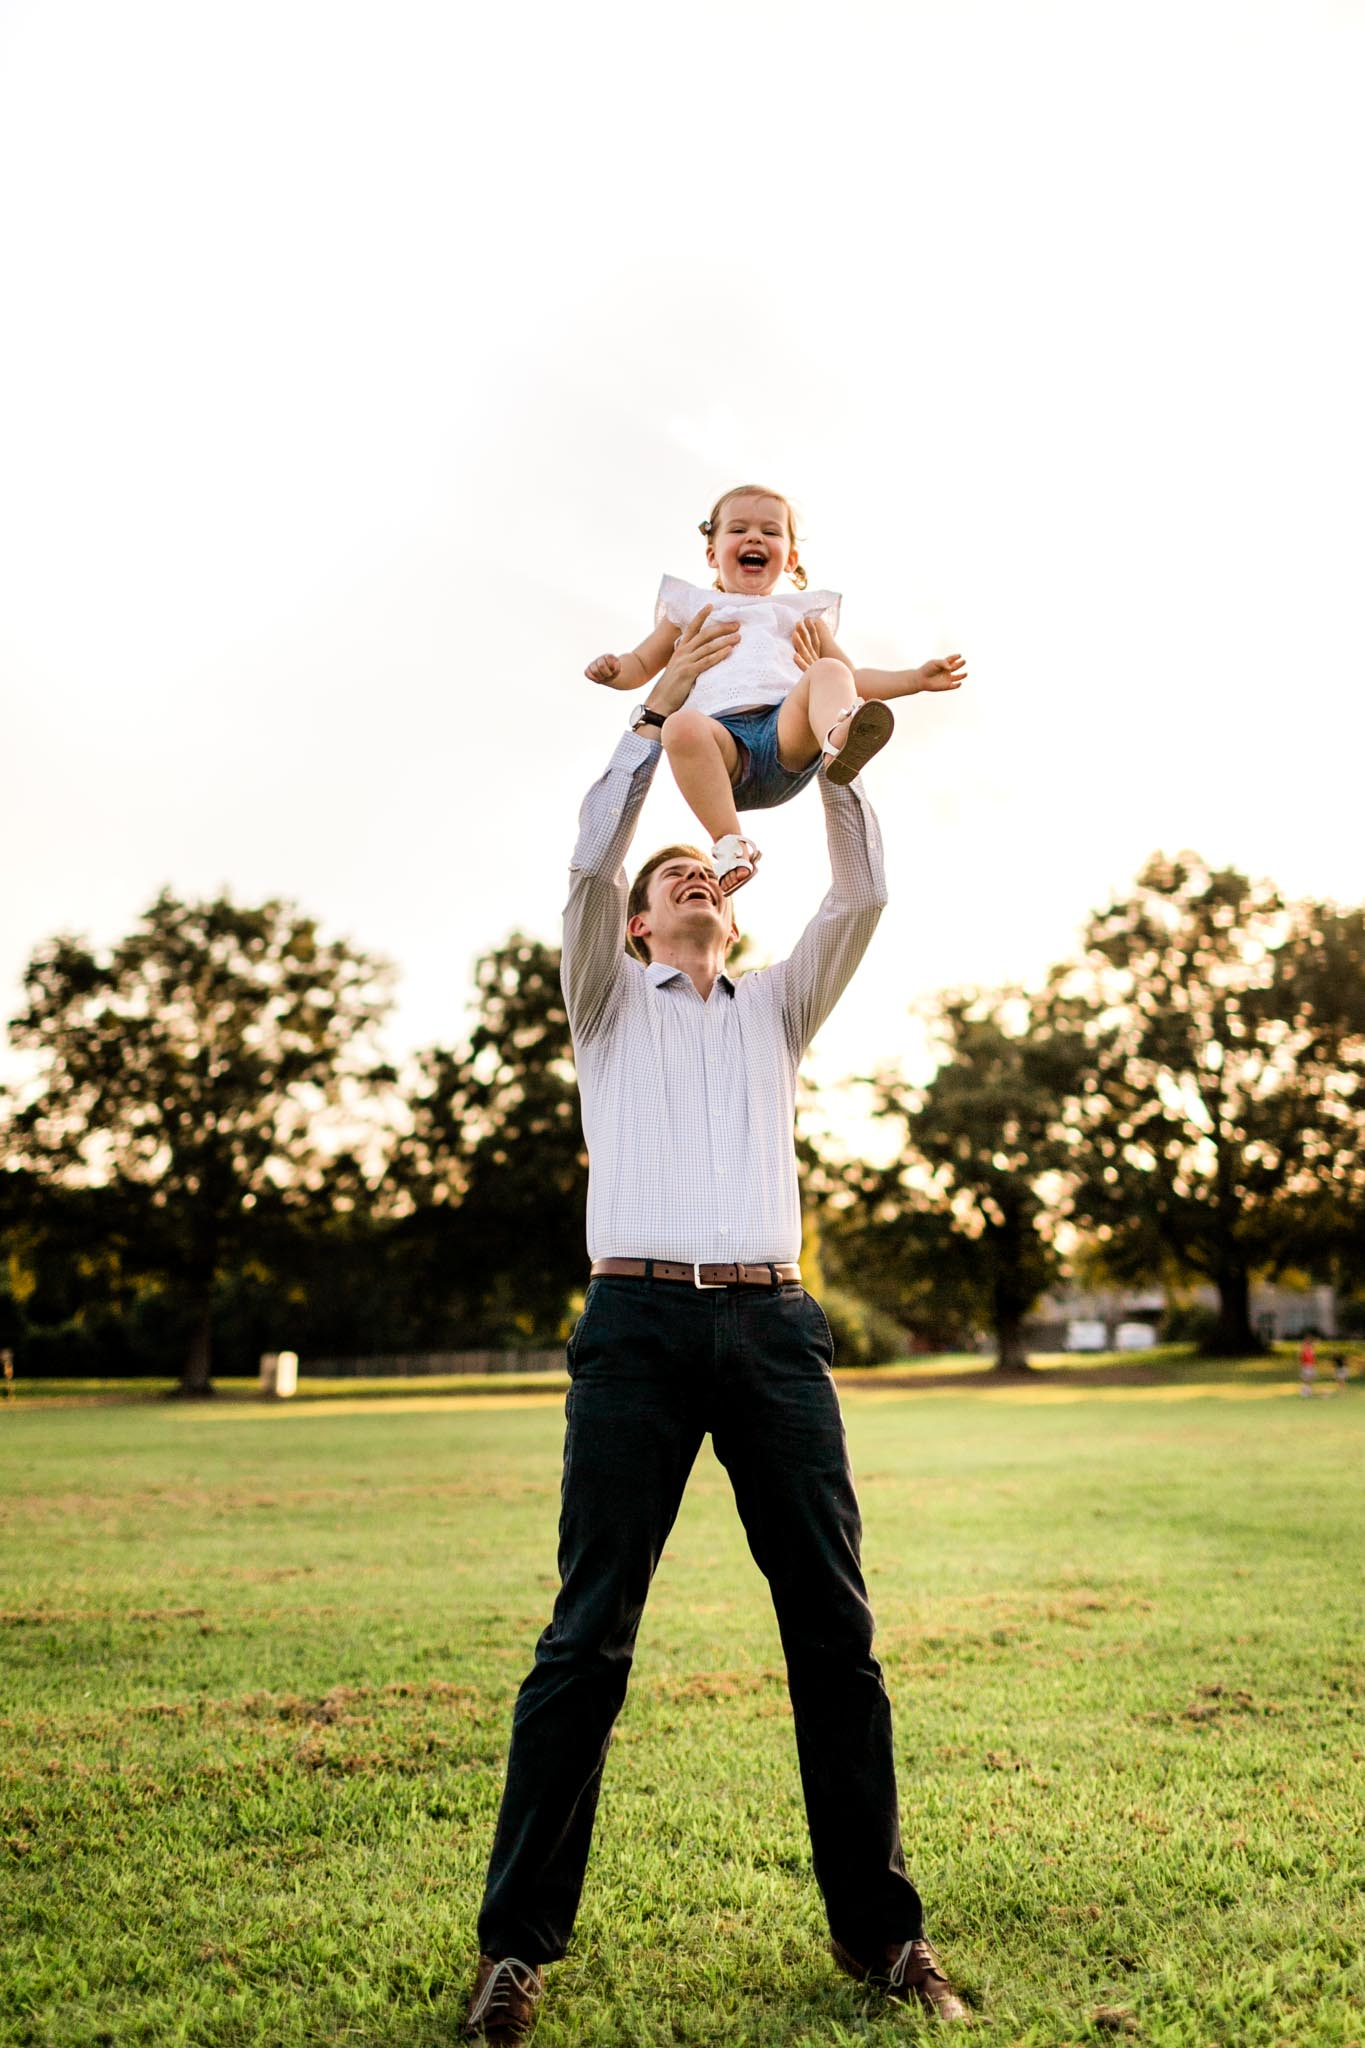 Raleigh Family Photographer at Dix Park | By G. Lin Photography | Dad throwing daughter up in the air and laughing